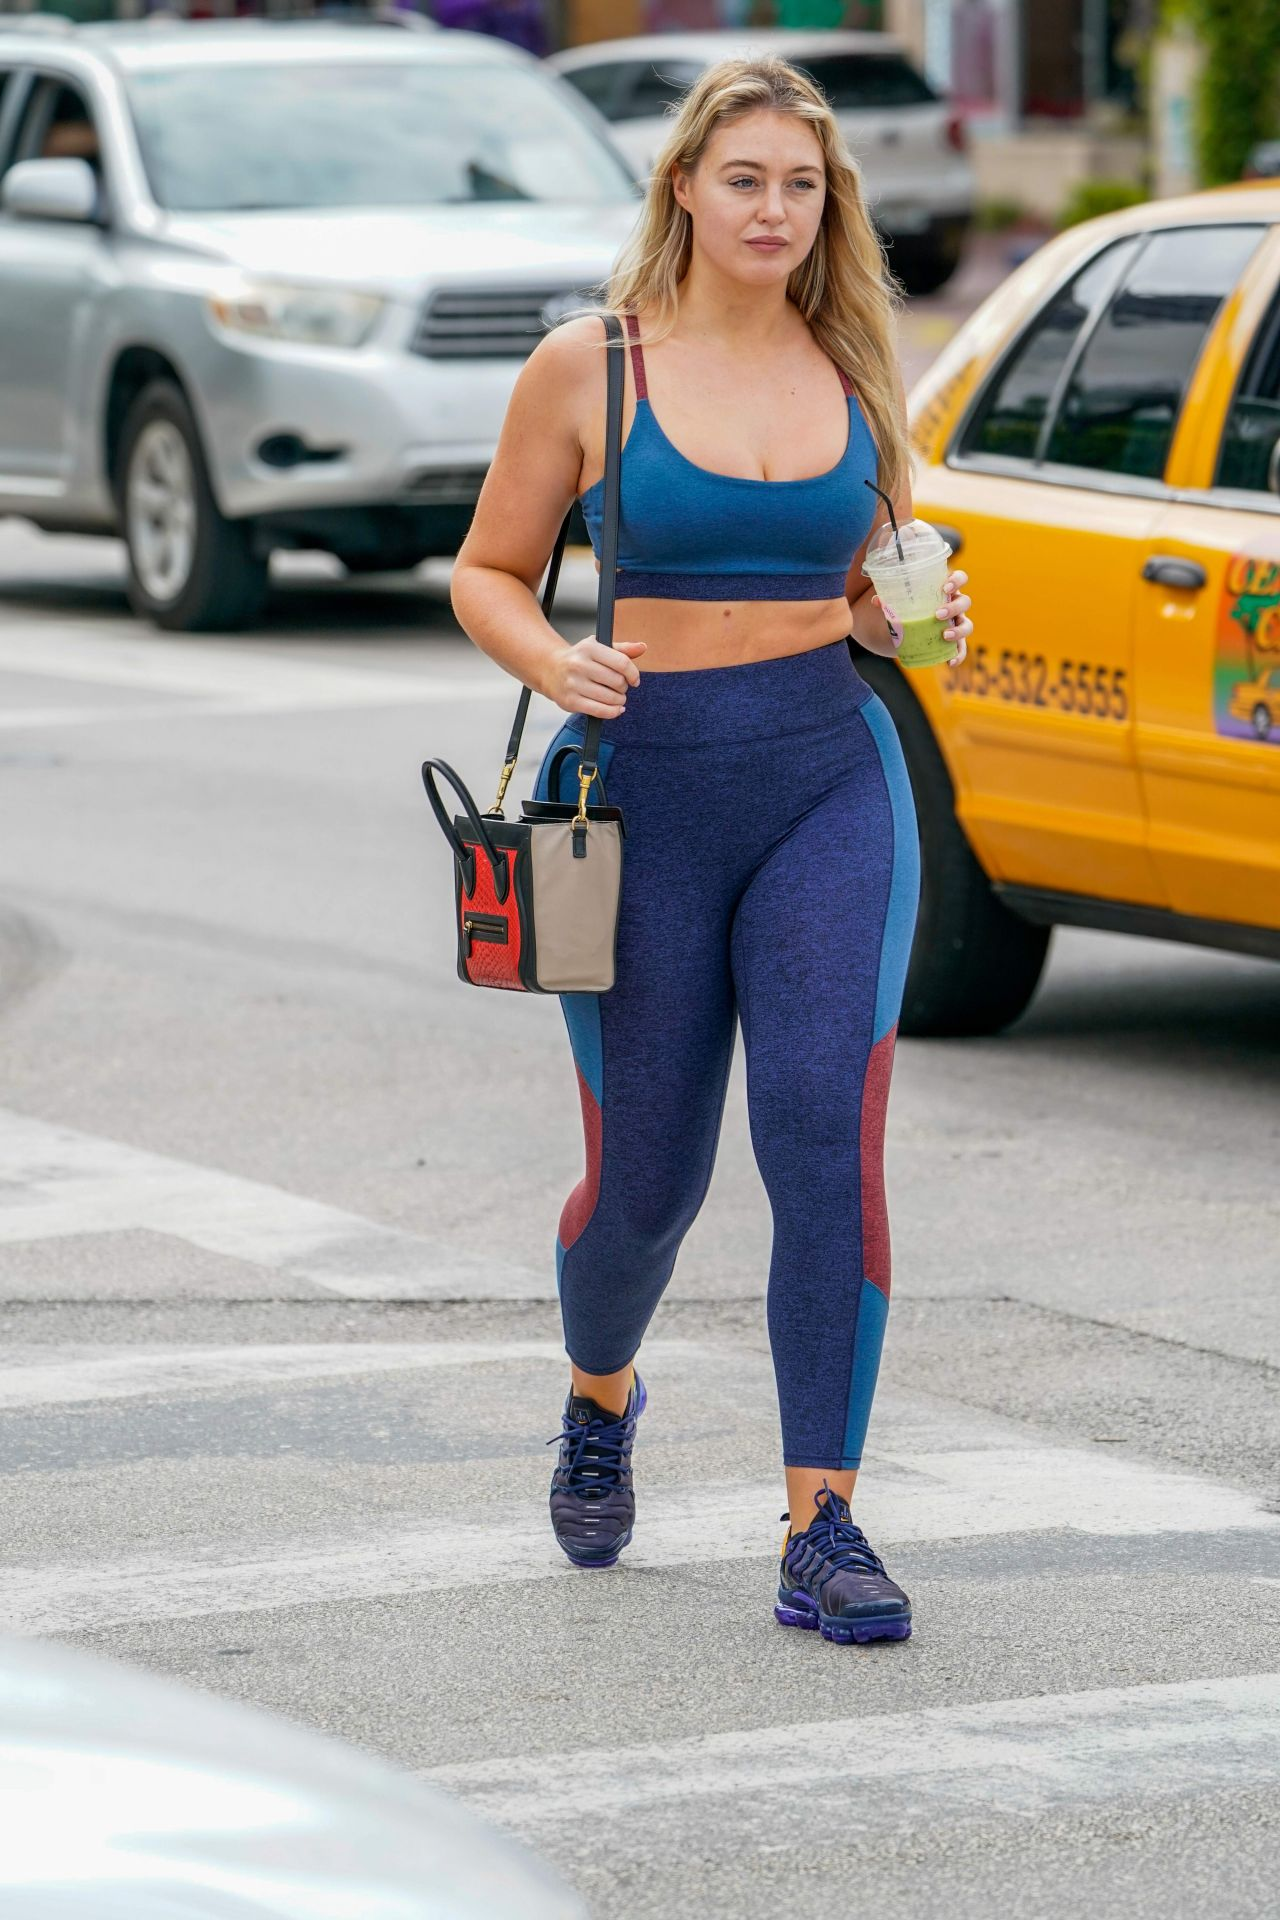 Iskra Lawrence In Tight Workout Clothes Miami 12 10 2018